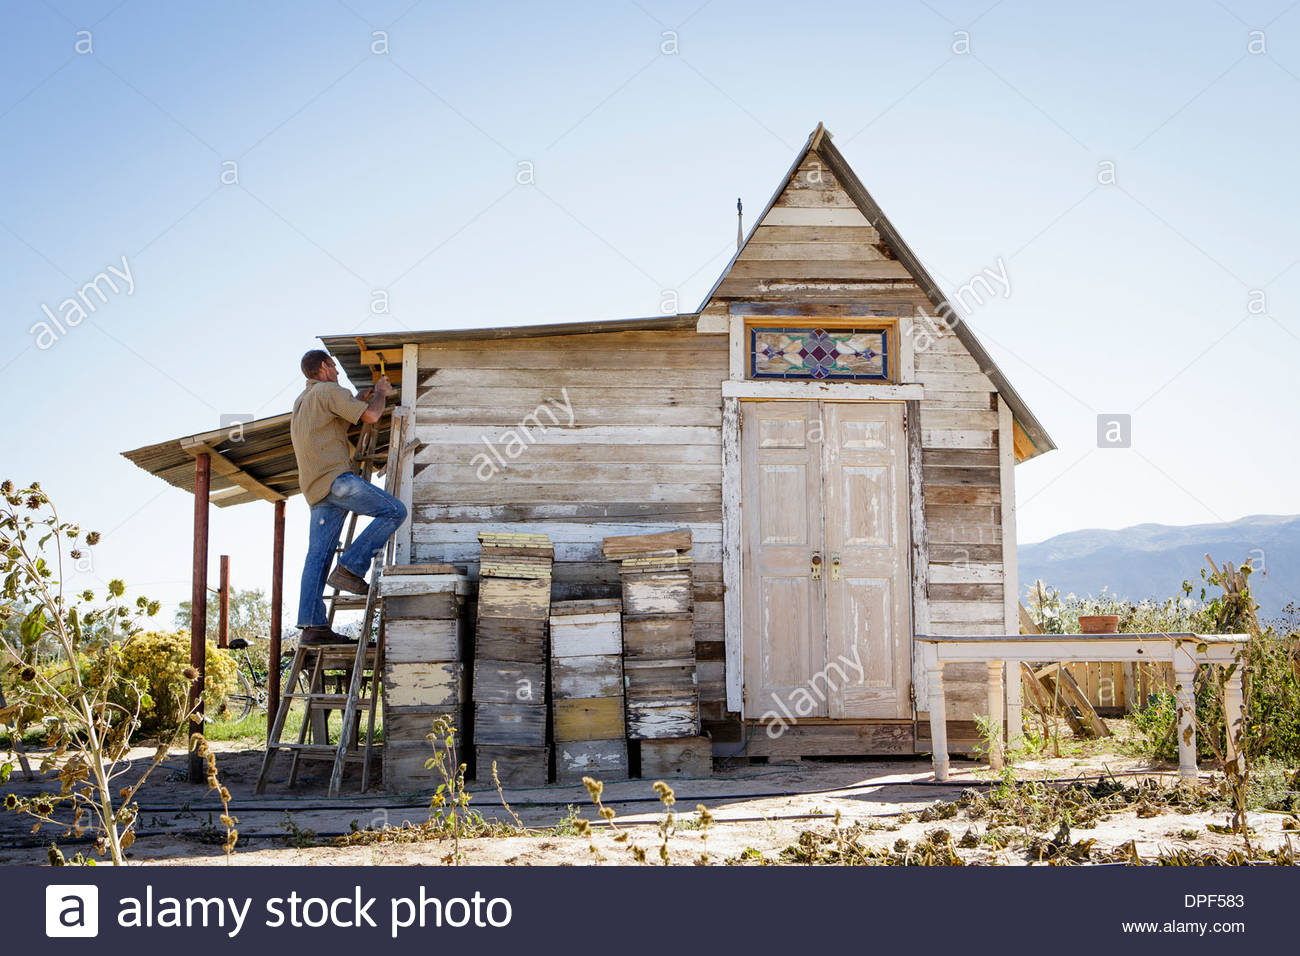 Farmer on ladders repairing wooden barn - Stock Image